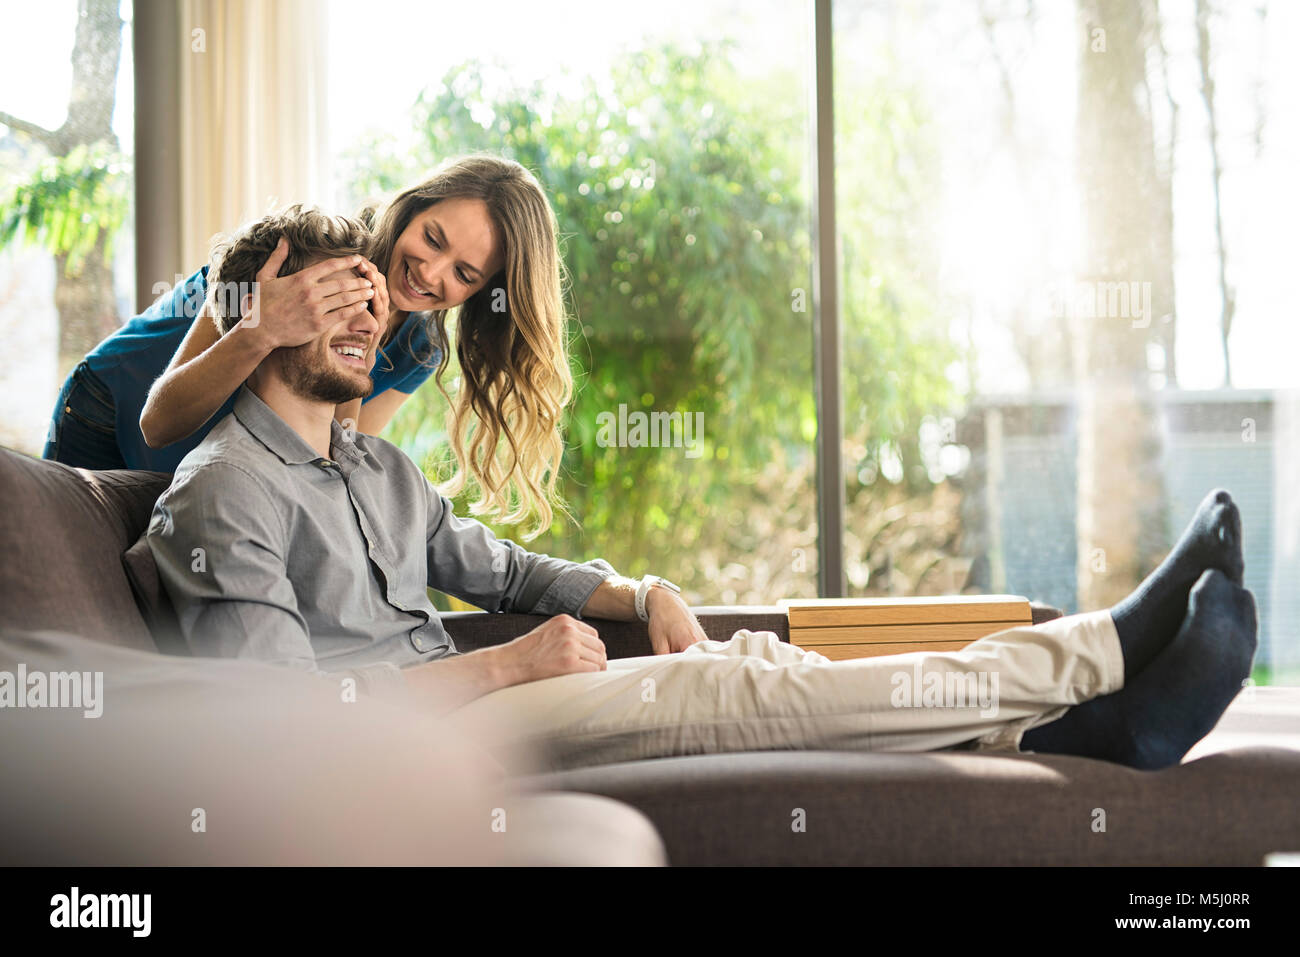 Smiling woman covering her boyfriend's eyes on sofa at home - Stock Image